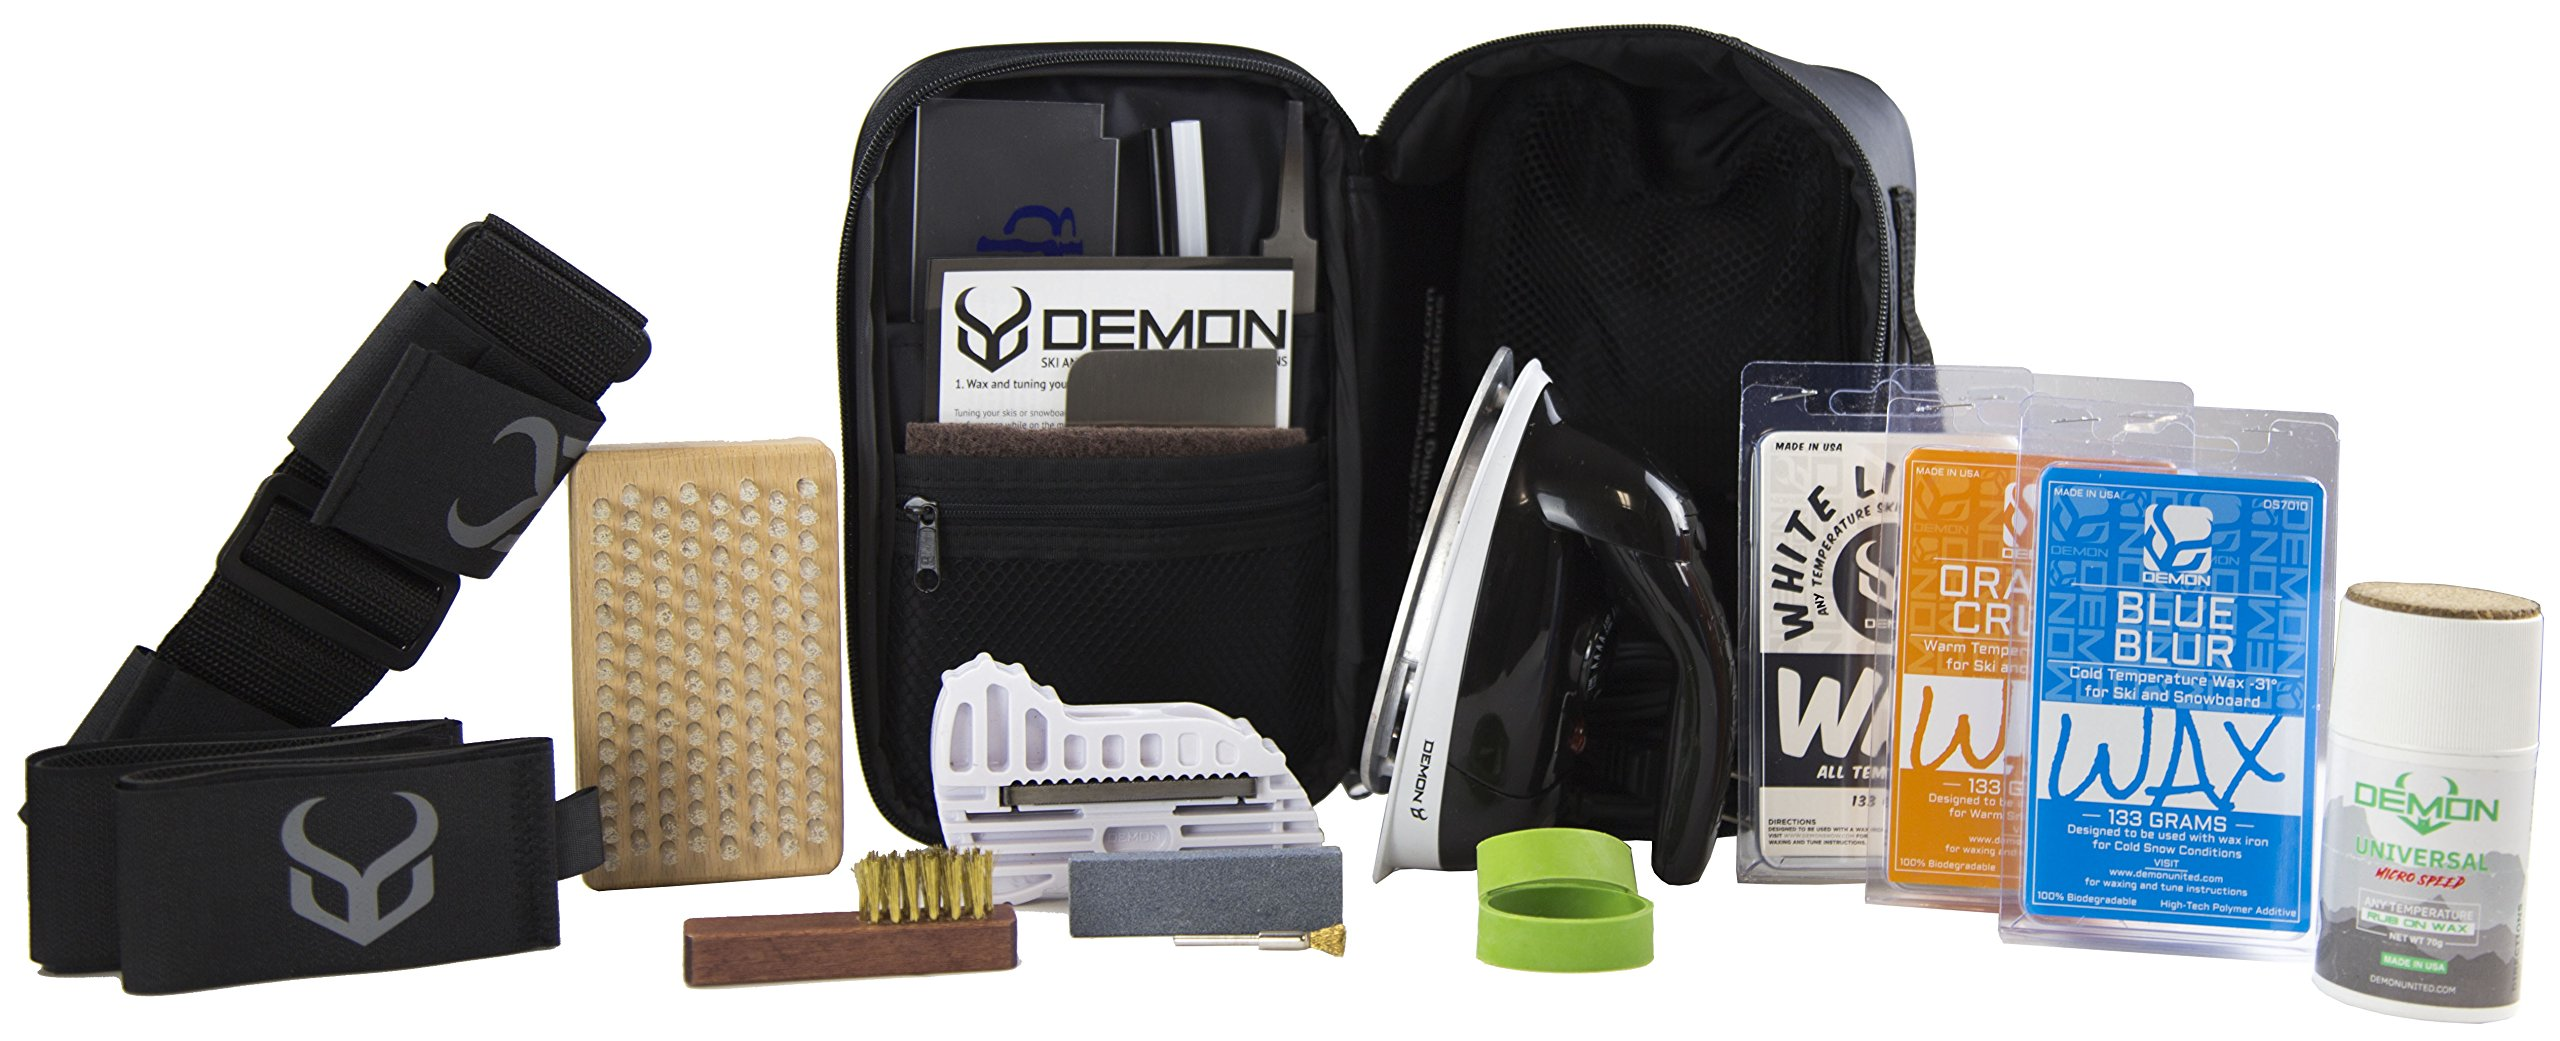 Demon Victory 22 Ski Tune Kit with Iron – Vacation Edition- Includes Ski Straps, Ski Shoulder Carry Harness & Demon Micro Speed Rub On Wax by Demon United